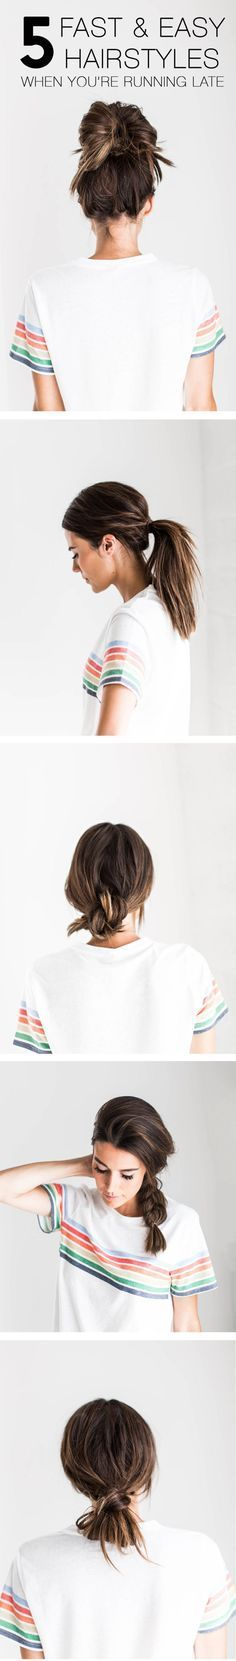 My easy go to hairstyles for those busy mornings!